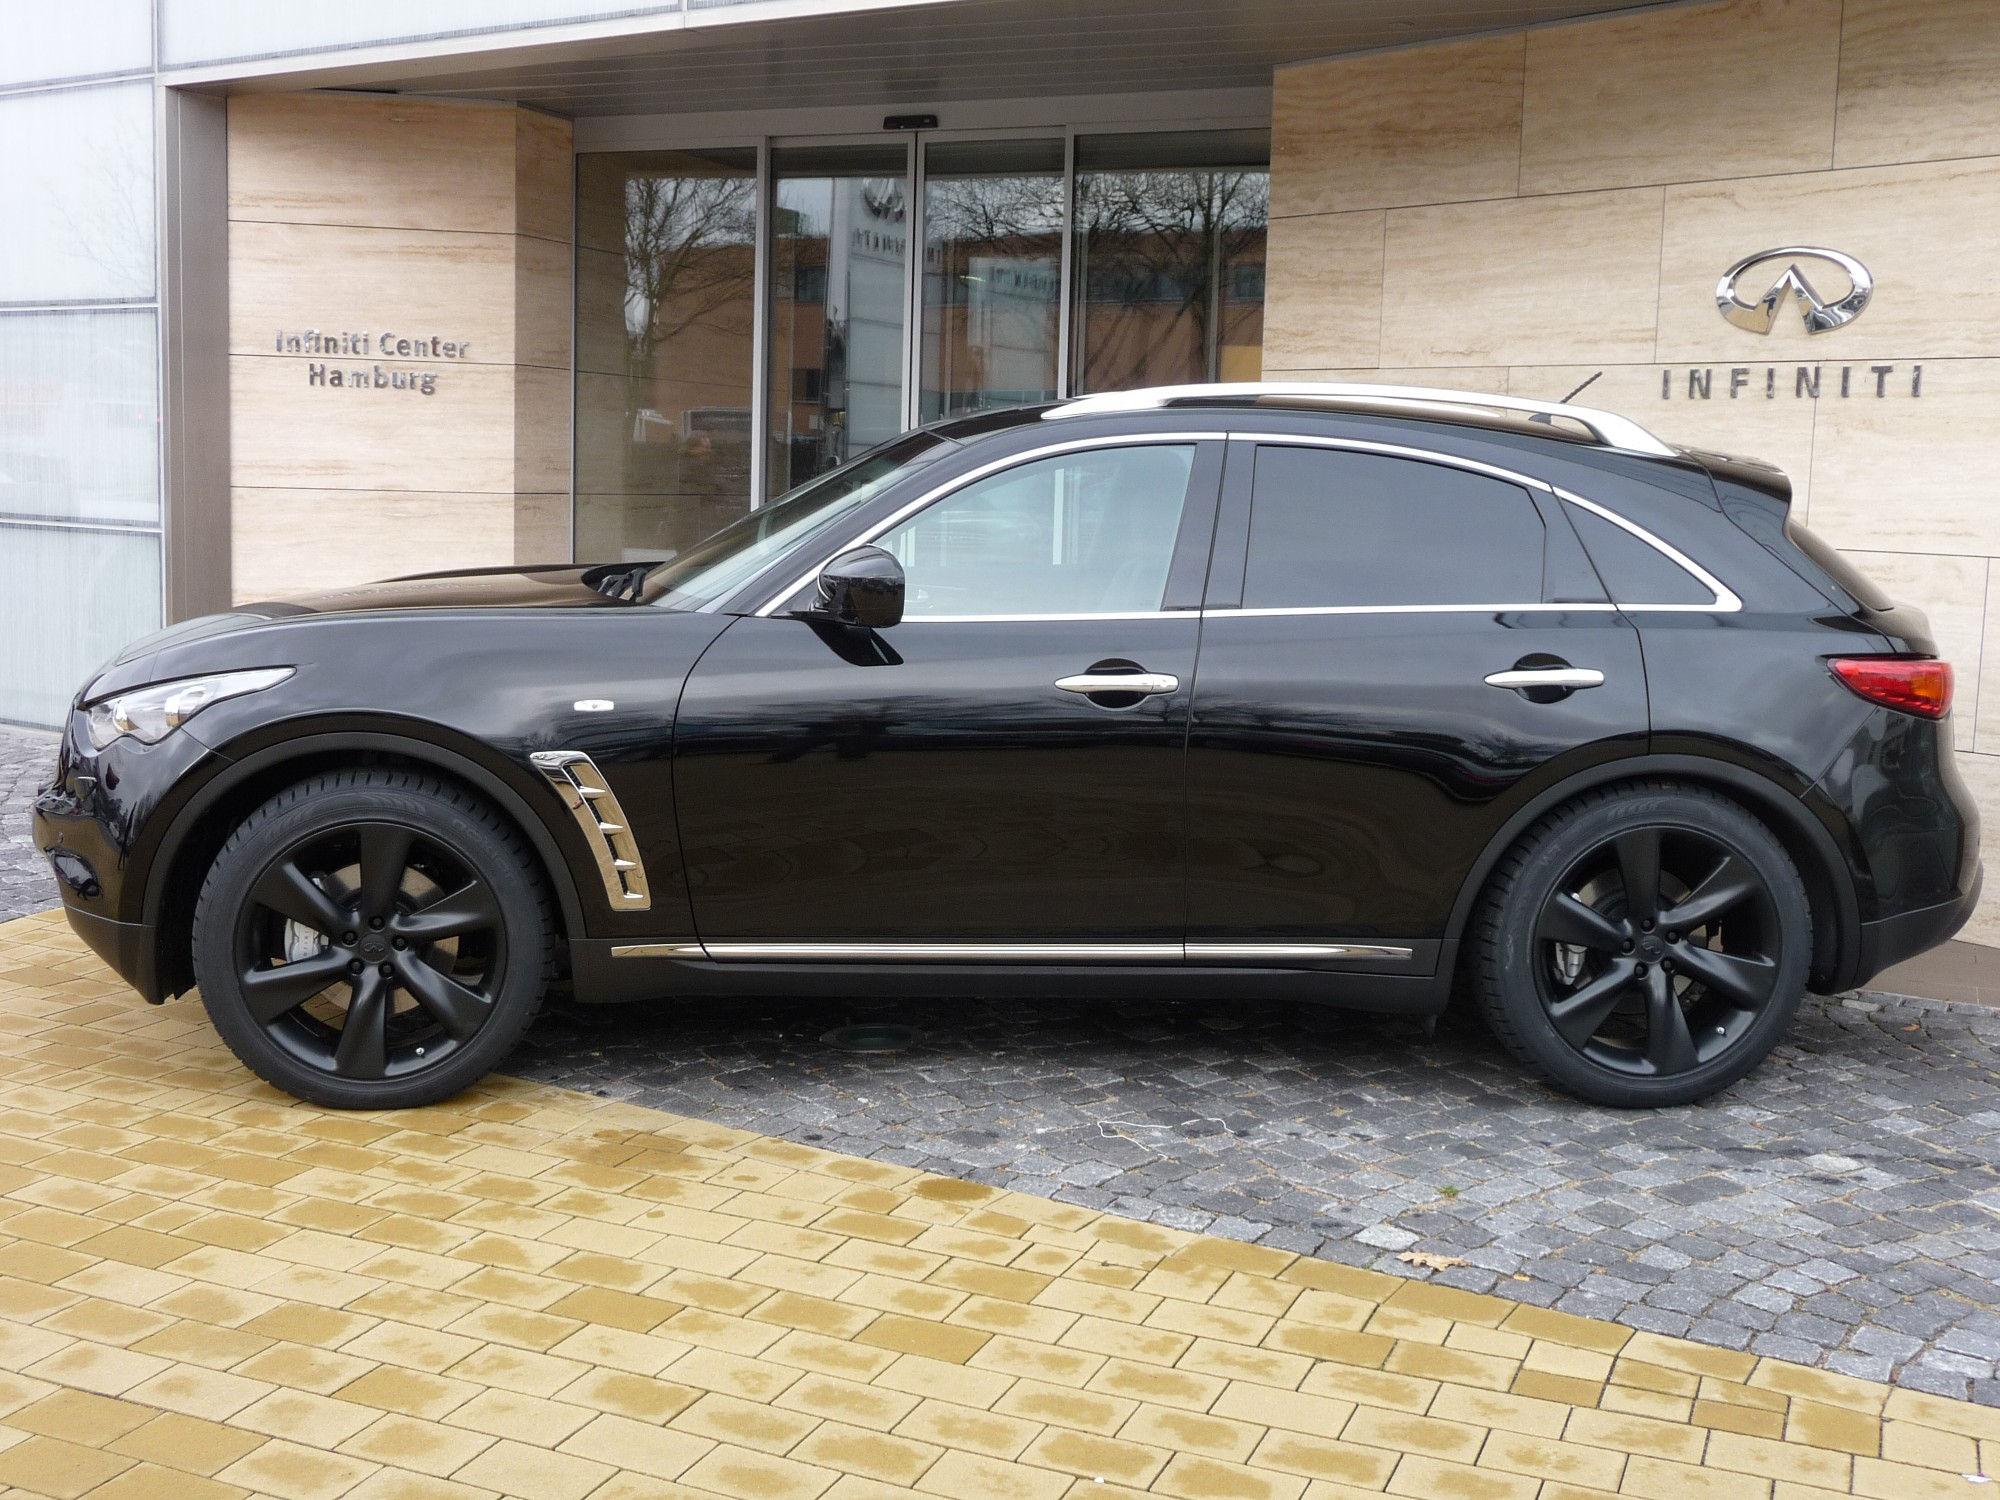 Infiniti Fx30d Amazing Photo On Openiso Org Collection Of Cars